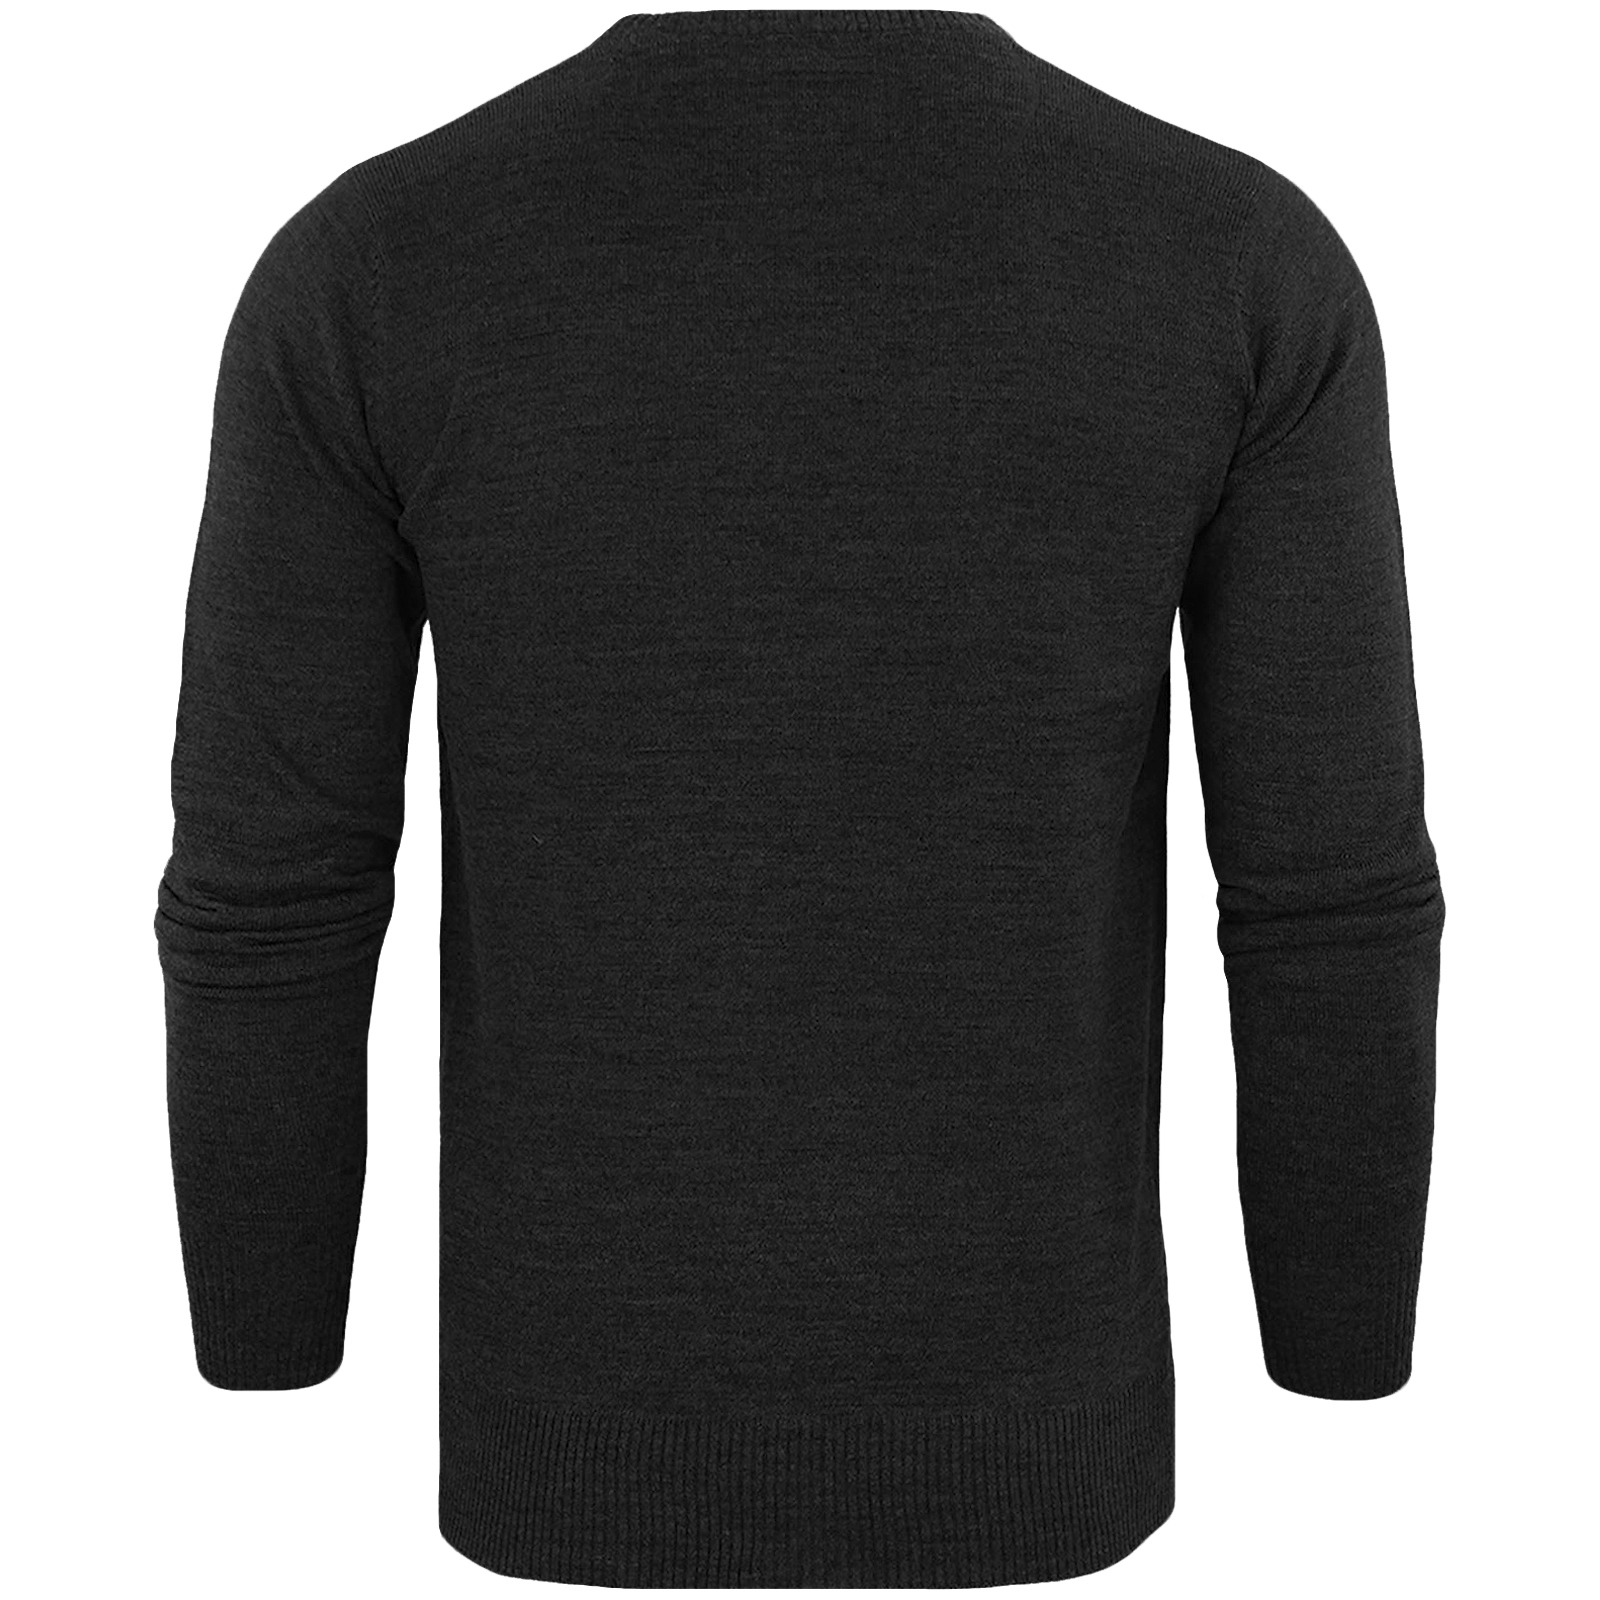 Brave-Soul-Mens-Parse-Knitted-Long-Sleeve-Crew-Neck-Jumper-Sweater-Pullover-Top thumbnail 9